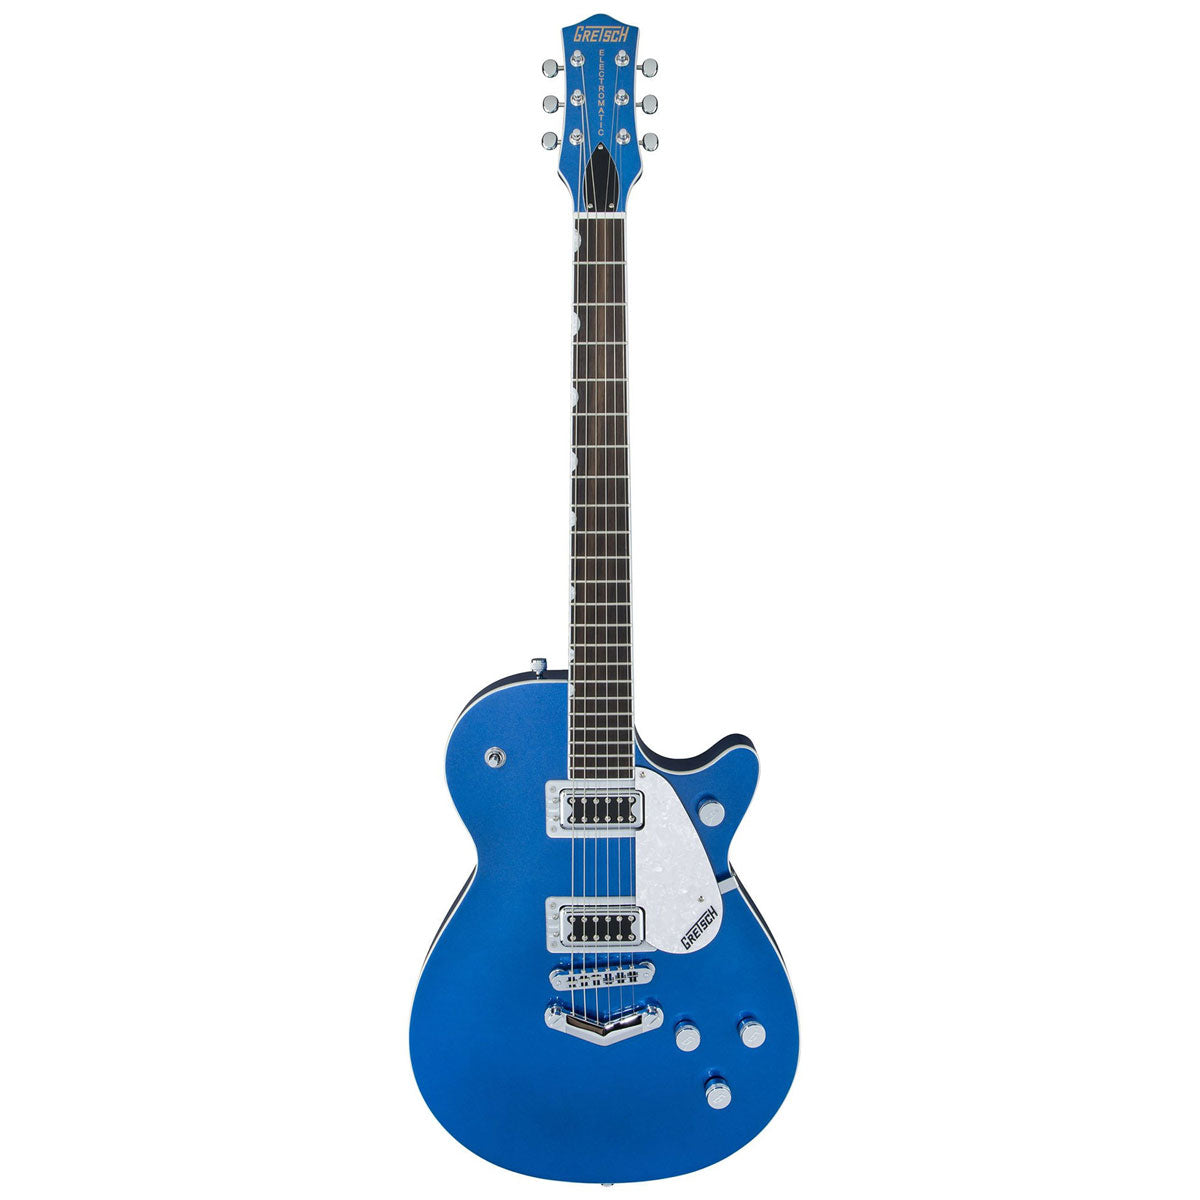 Gretsch G5435 Limited Edition Electromatic Pro Jet - Fairlane Blue